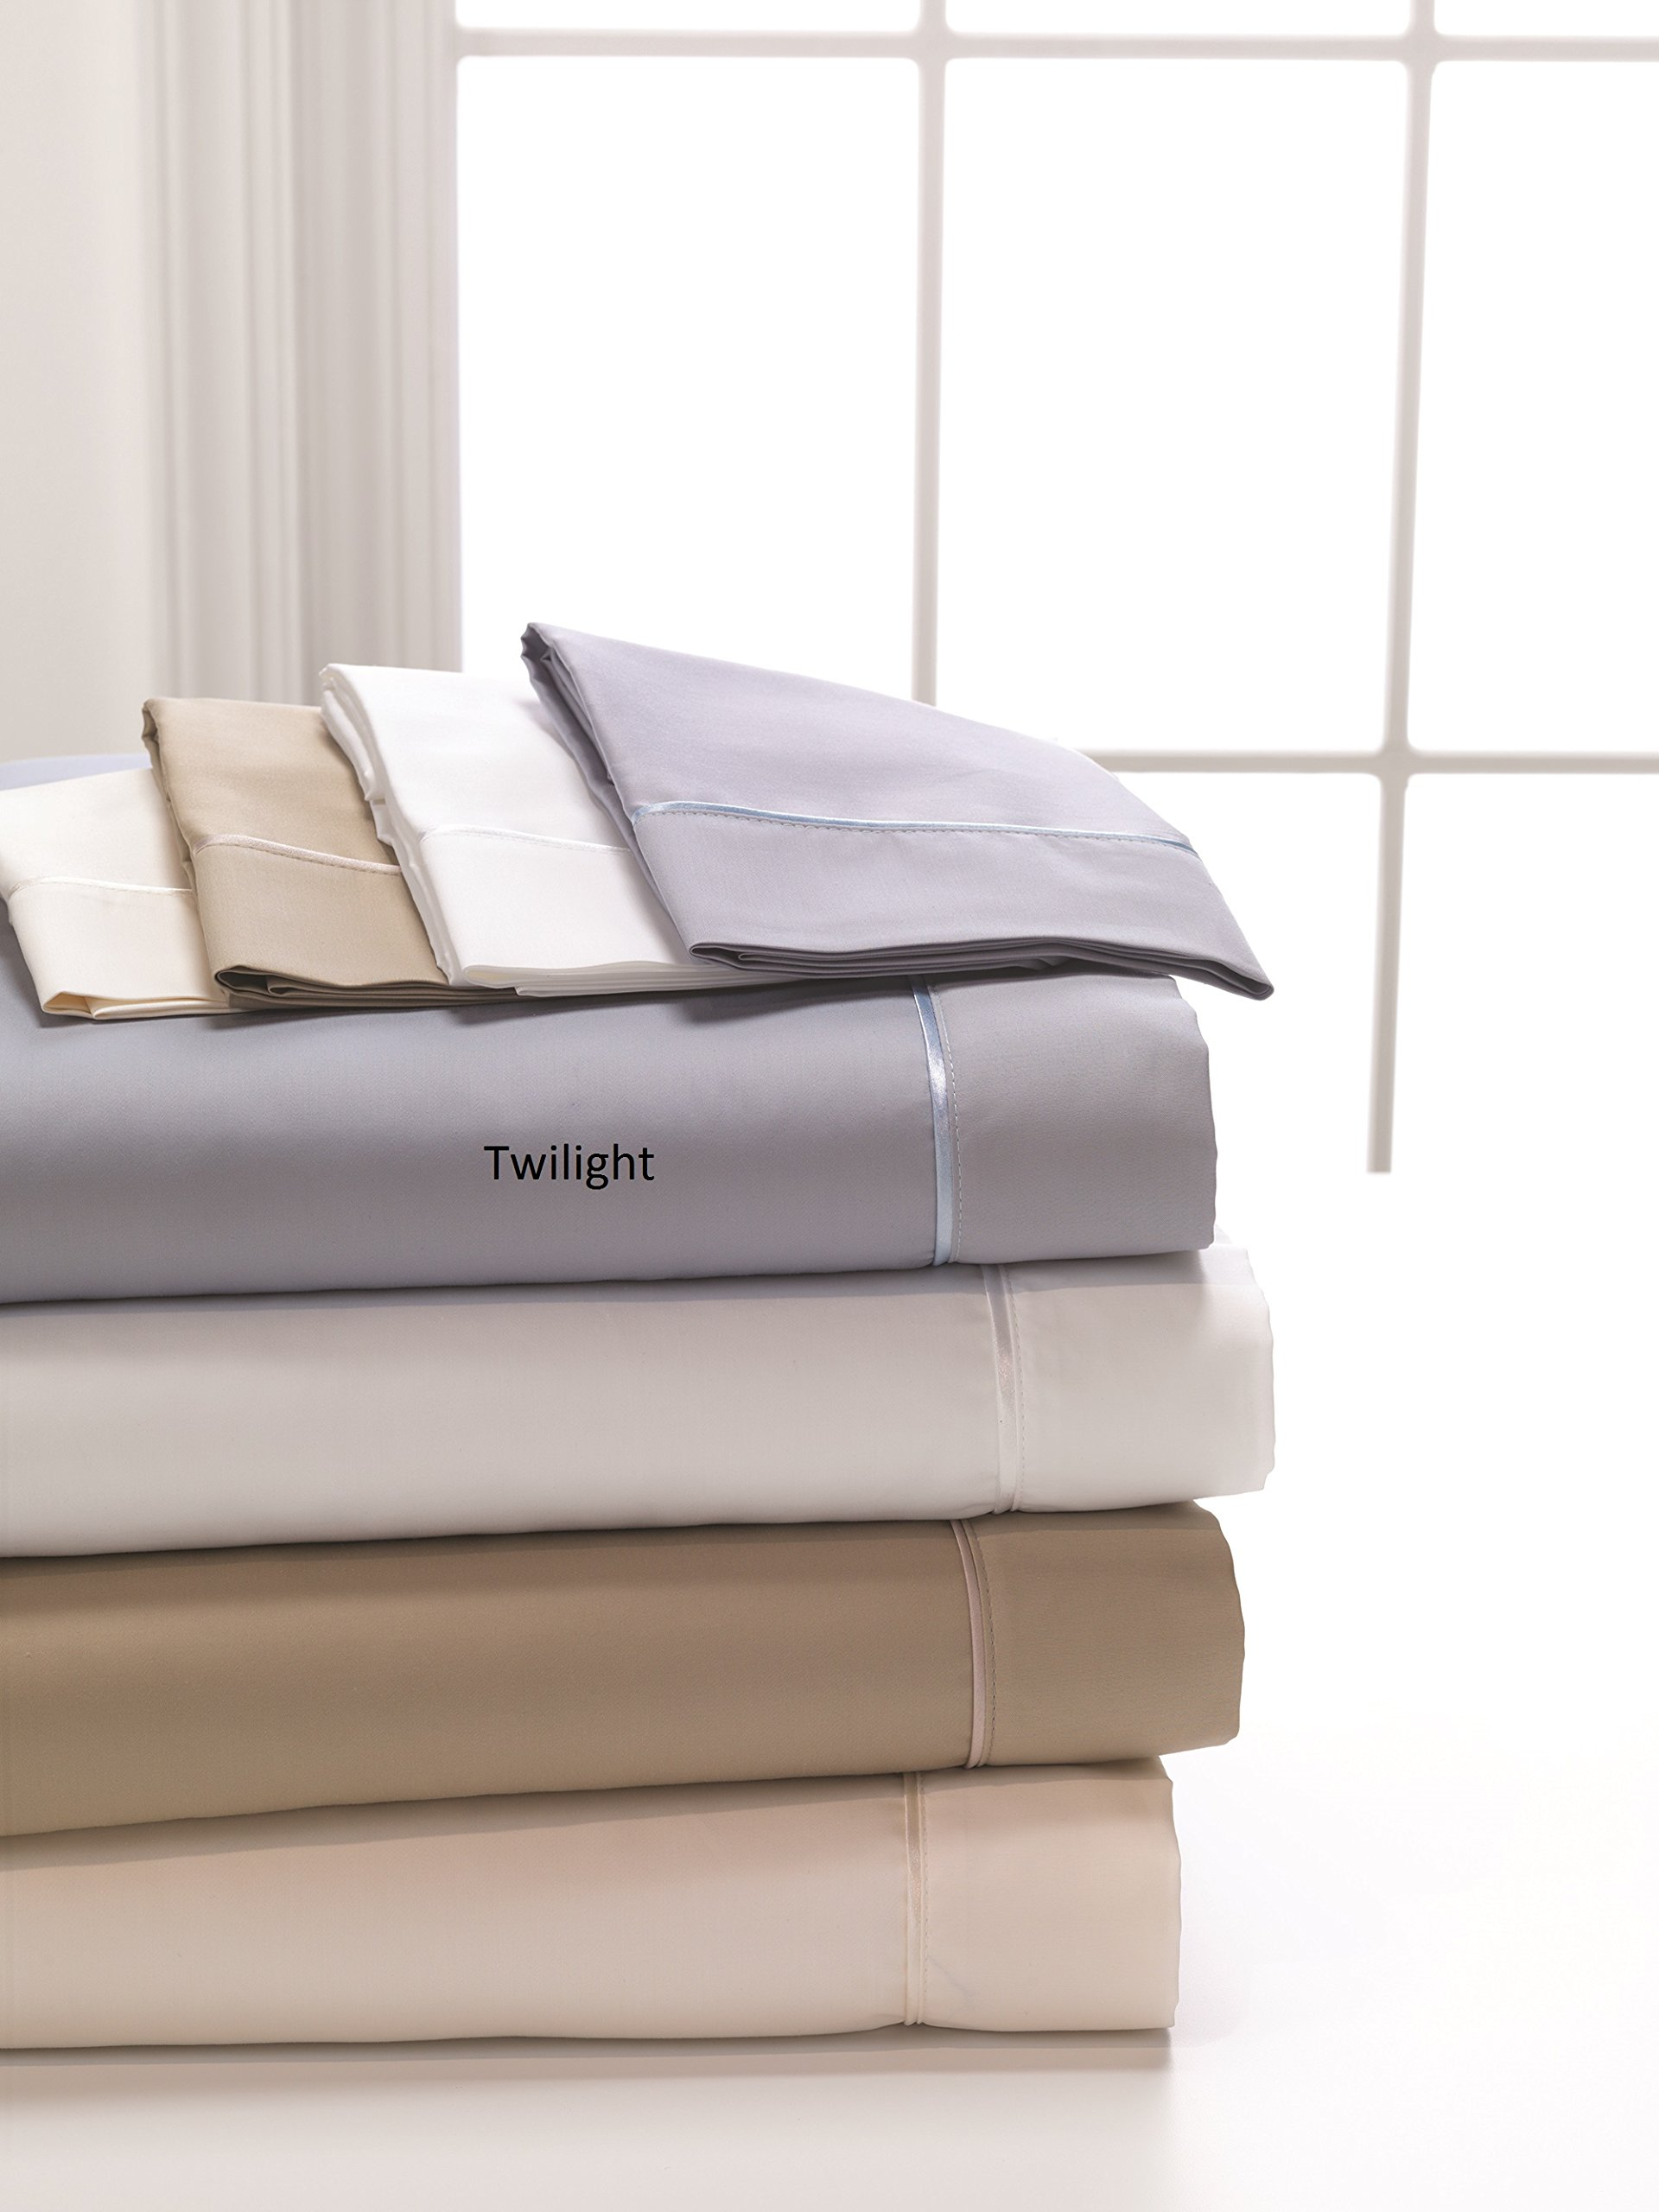 DreamFit 4-Degree 400 Thread Count Preferred 100-Percent Egyptian Cotton Sheet Set, King, Twilight